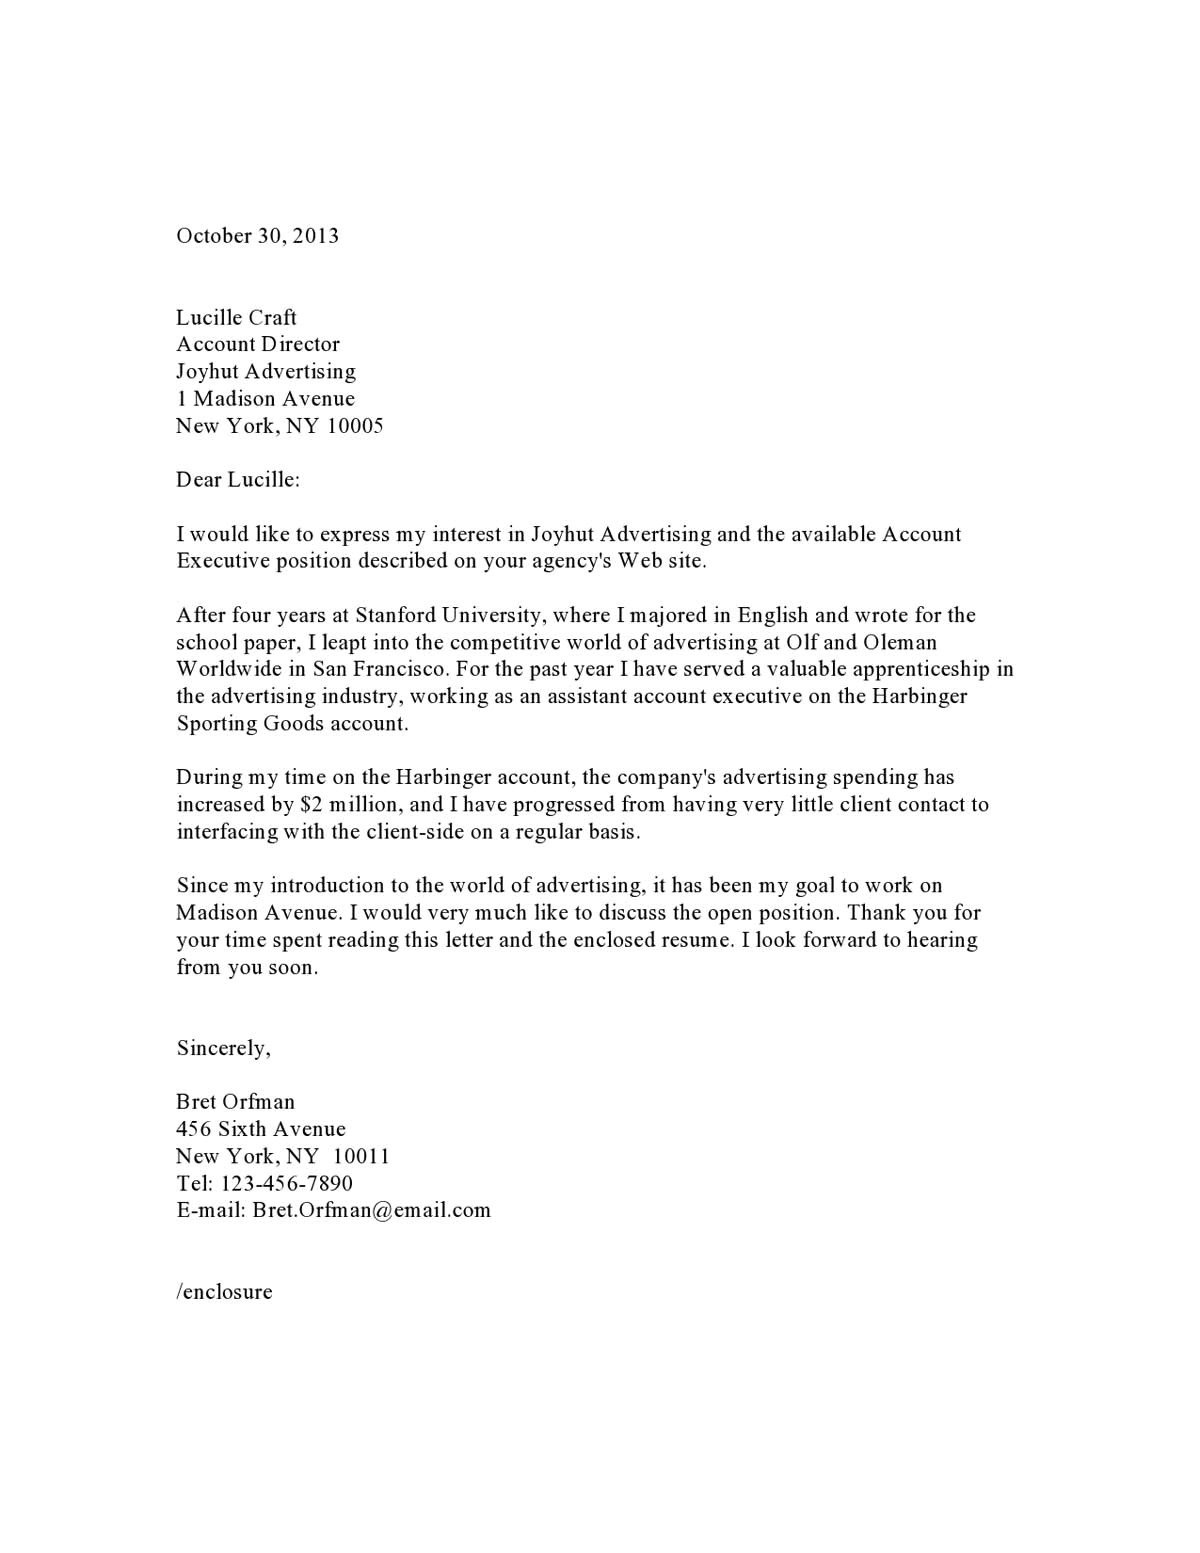 Cover Letter Templats Cover Letter Samples Download Free Cover Letter Templates